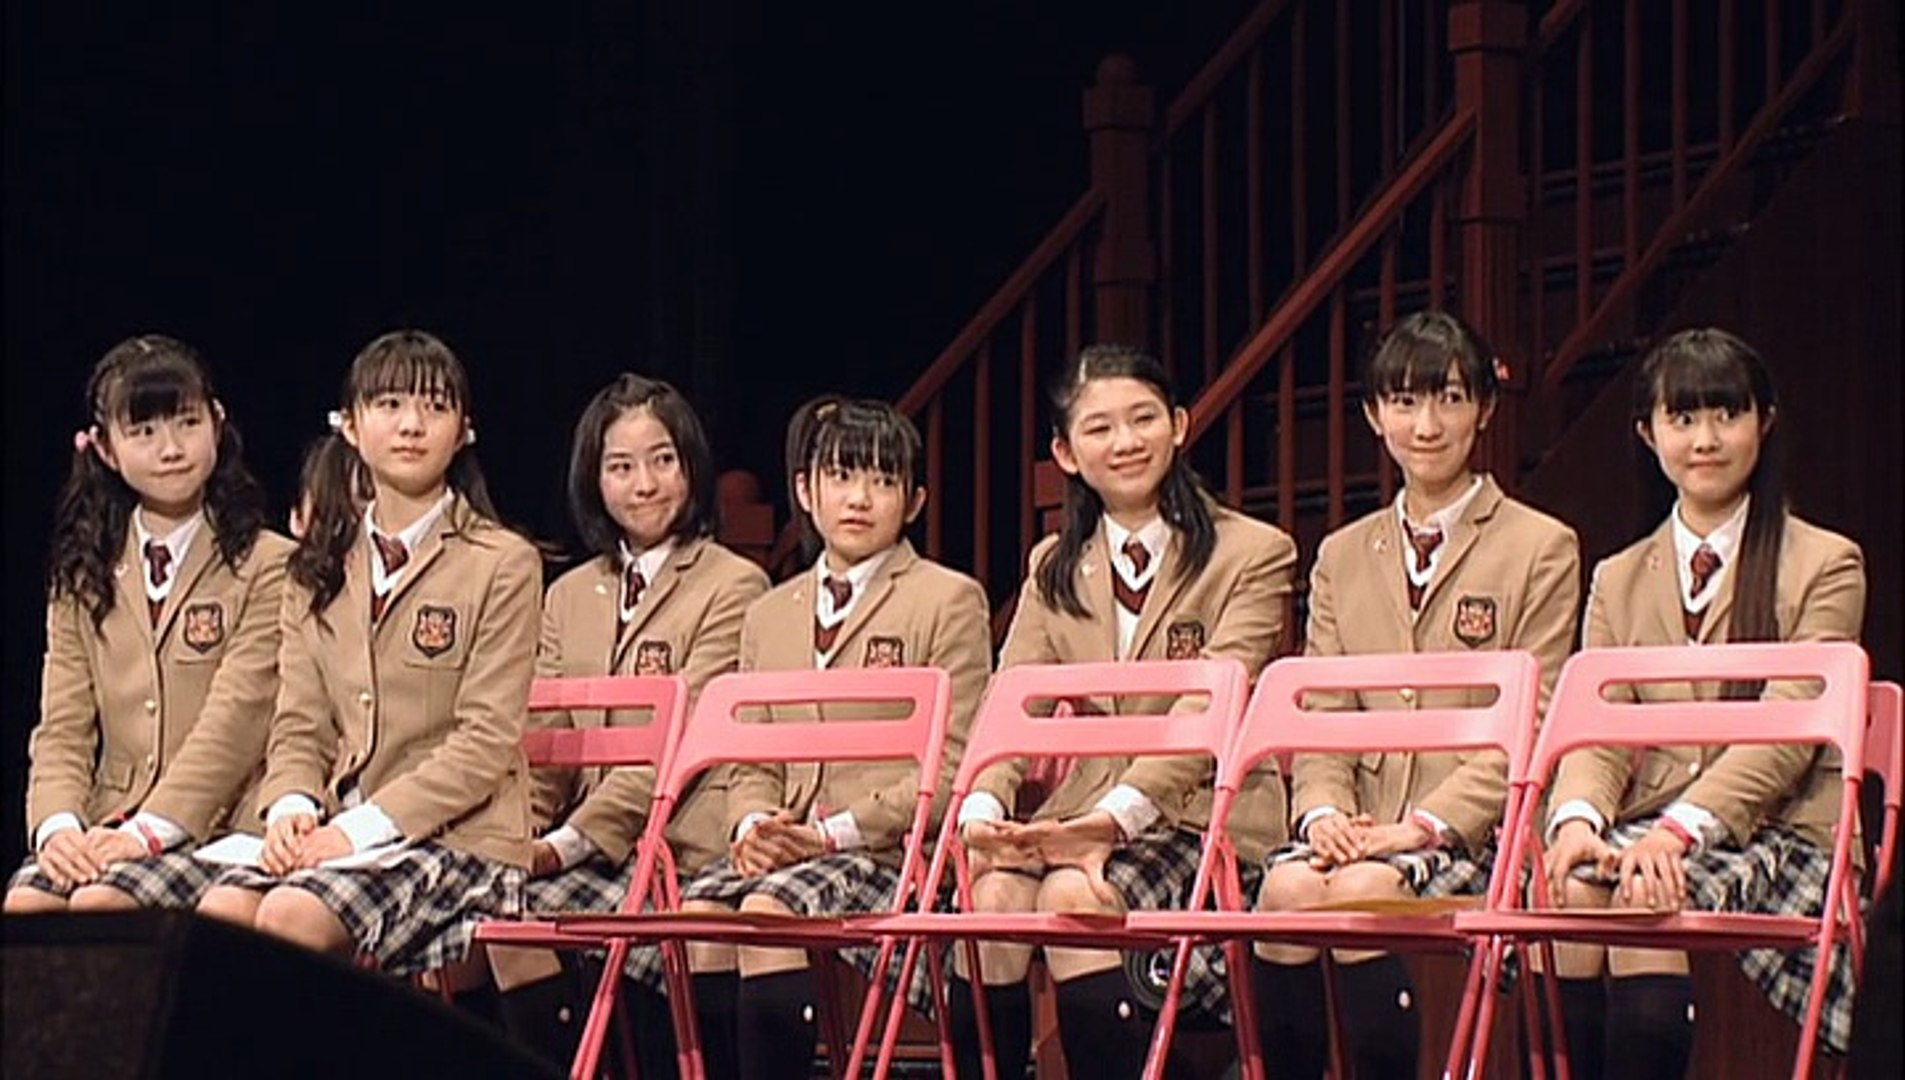 Sakura Gakuin さくら学院 - The Road to Graduation FINAL 2013 ~2013 Nendo Sotsugyo~ [Part 3 of 3]